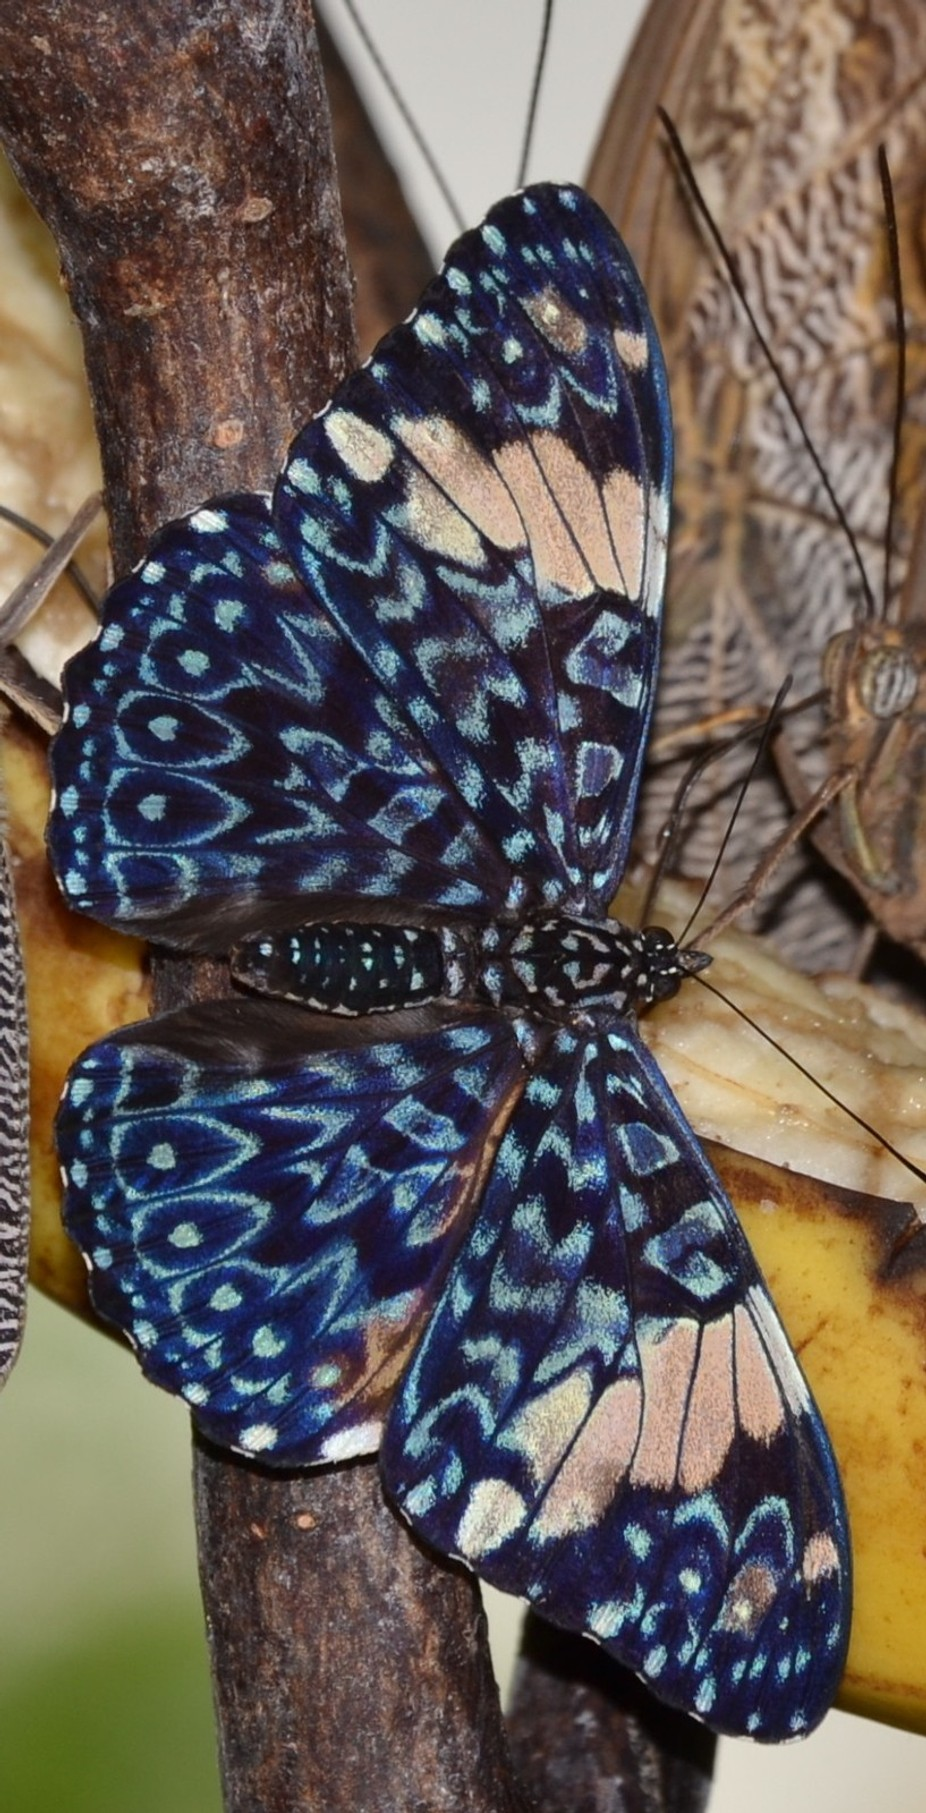 "Composed in the Key West Butterfly Nature Conservatory, Florida, Please click on the image for a full view. Cracker, Blue Hamadryas arinome  BLUE CRACKER* BUTTERFLY Hamadryas arinome. Cracker butterflies (also called Calico butterflies) are a neotropical group of medium-sized brush-footed butterfly species commonly found throughout South America to  Arizona. At least nine species can be found in Costa Rica. They acquired their common name due to the unusual way that males produce a ""cracking"" sound as part of their territorial displays. In the field, Hamadryas emit audible clicks when approached by potential predators."